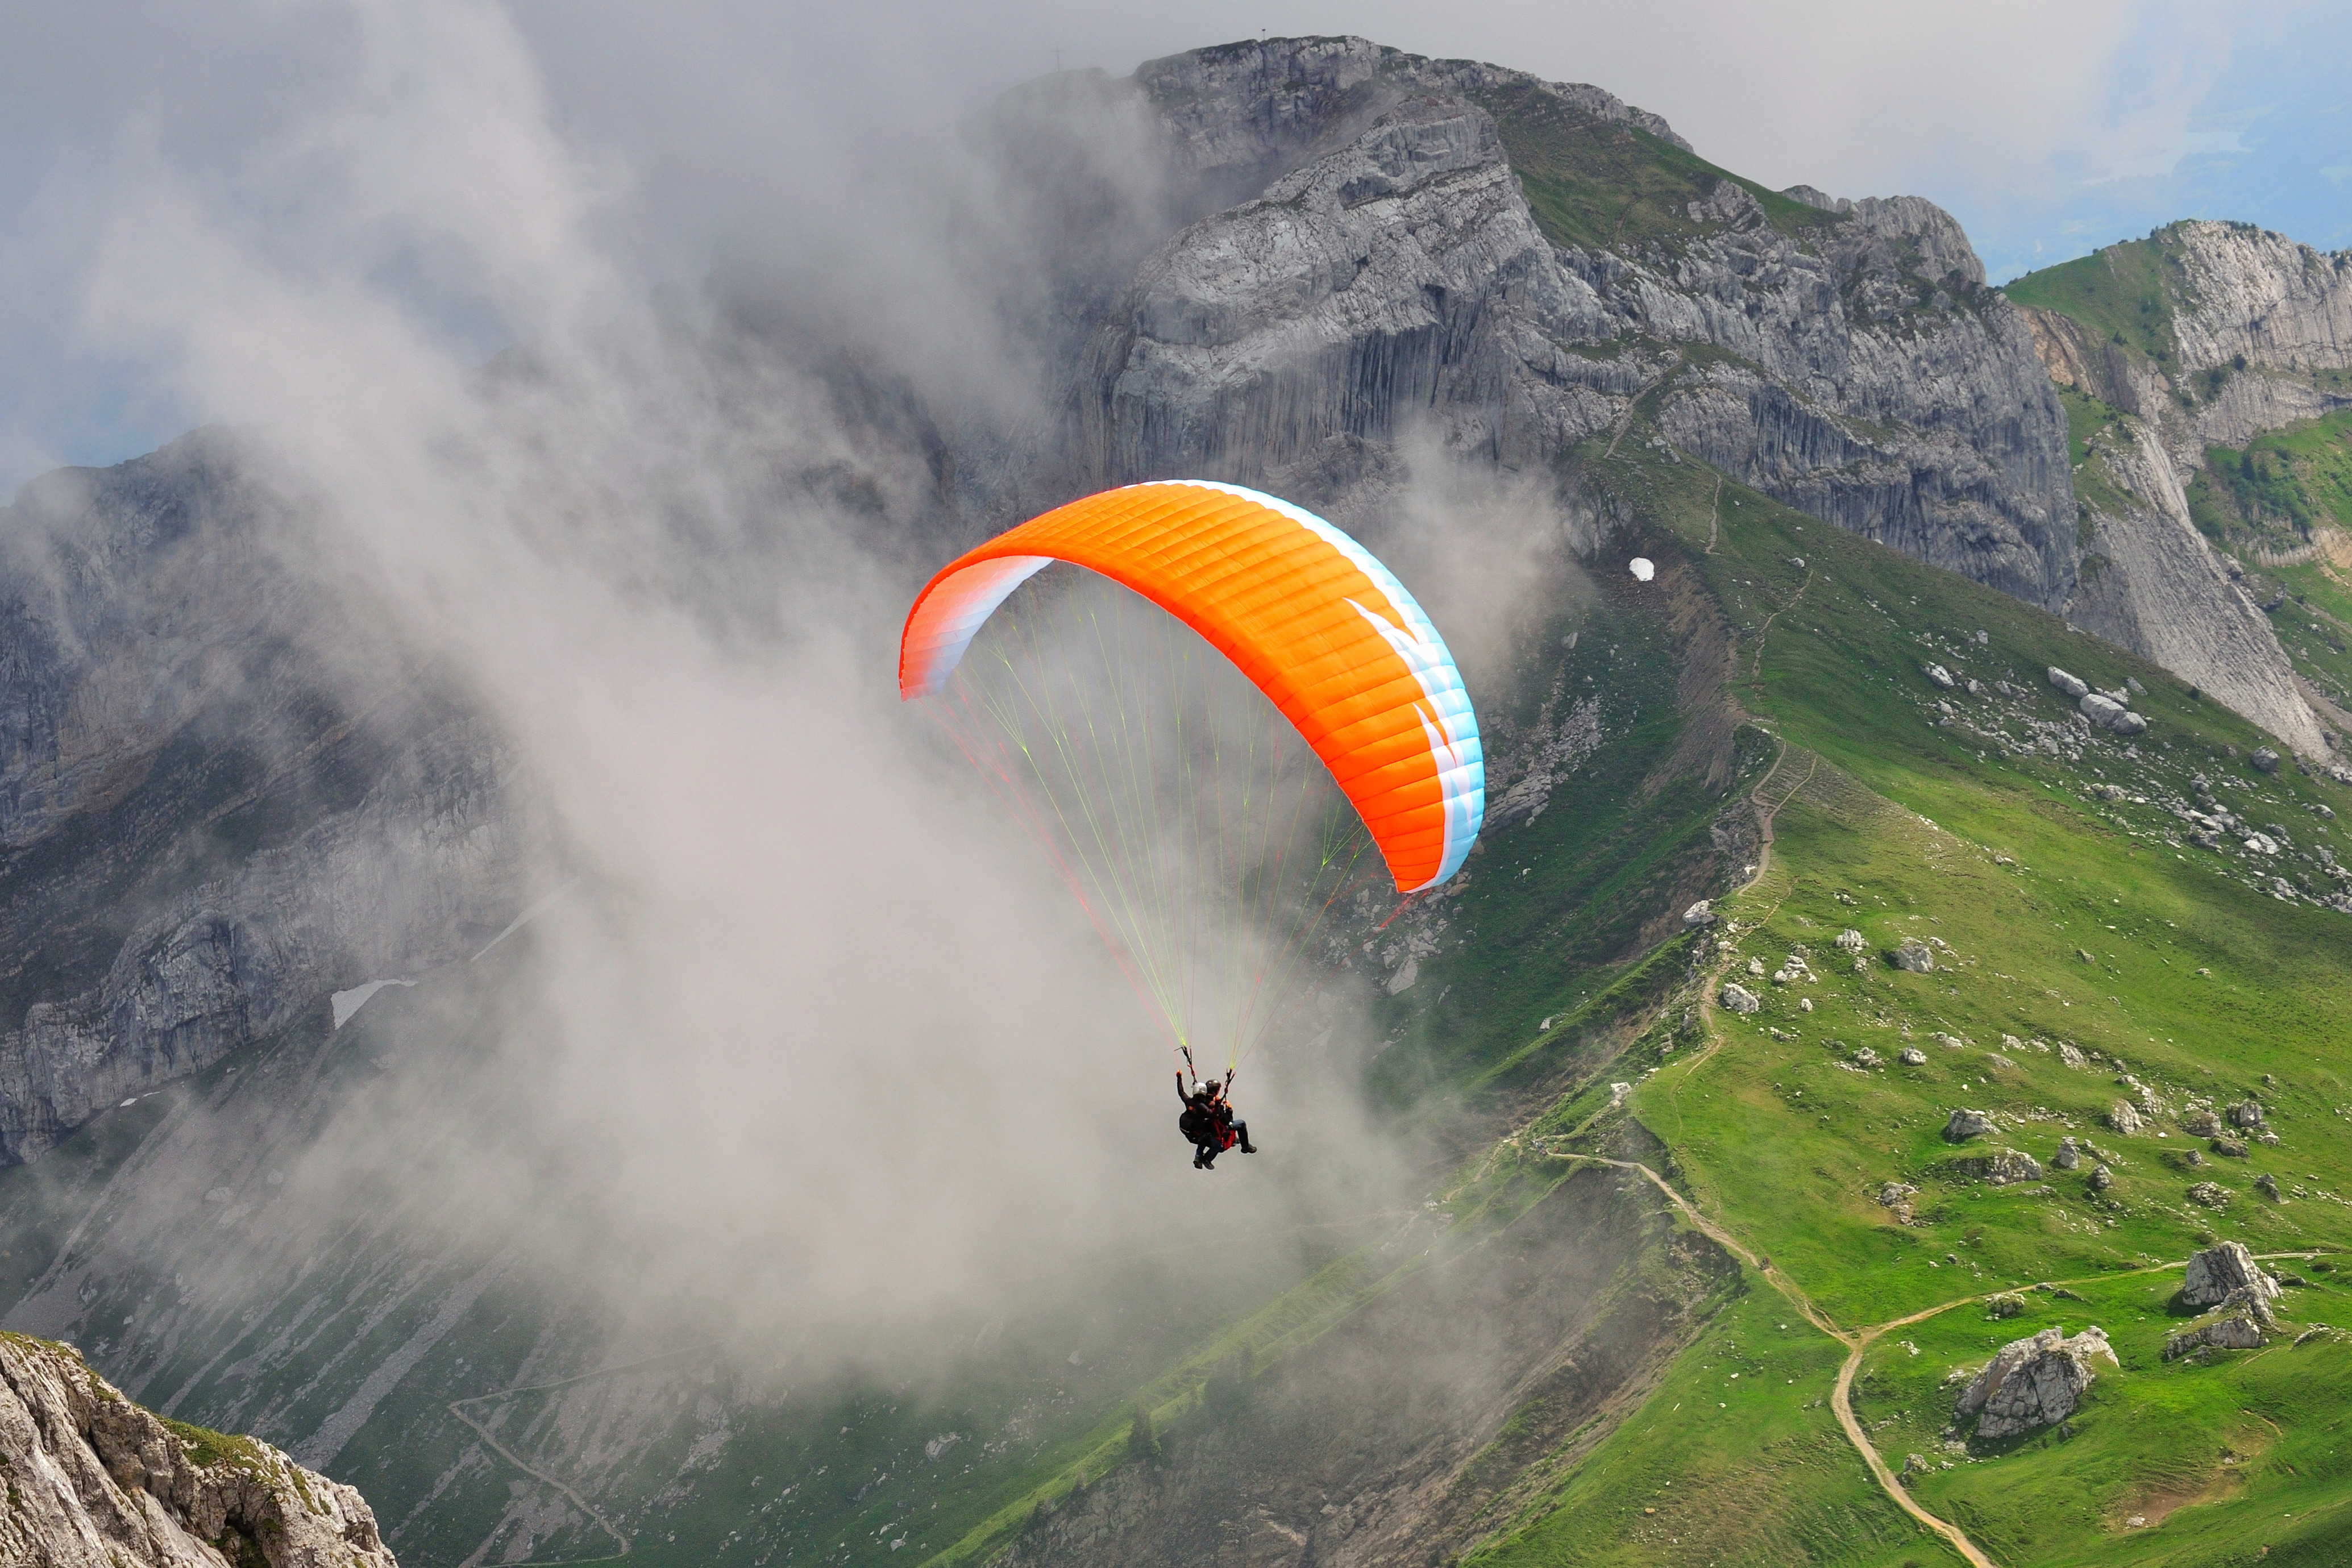 1513339298_1512562117_paragliding-in-india_1438933021.jpg